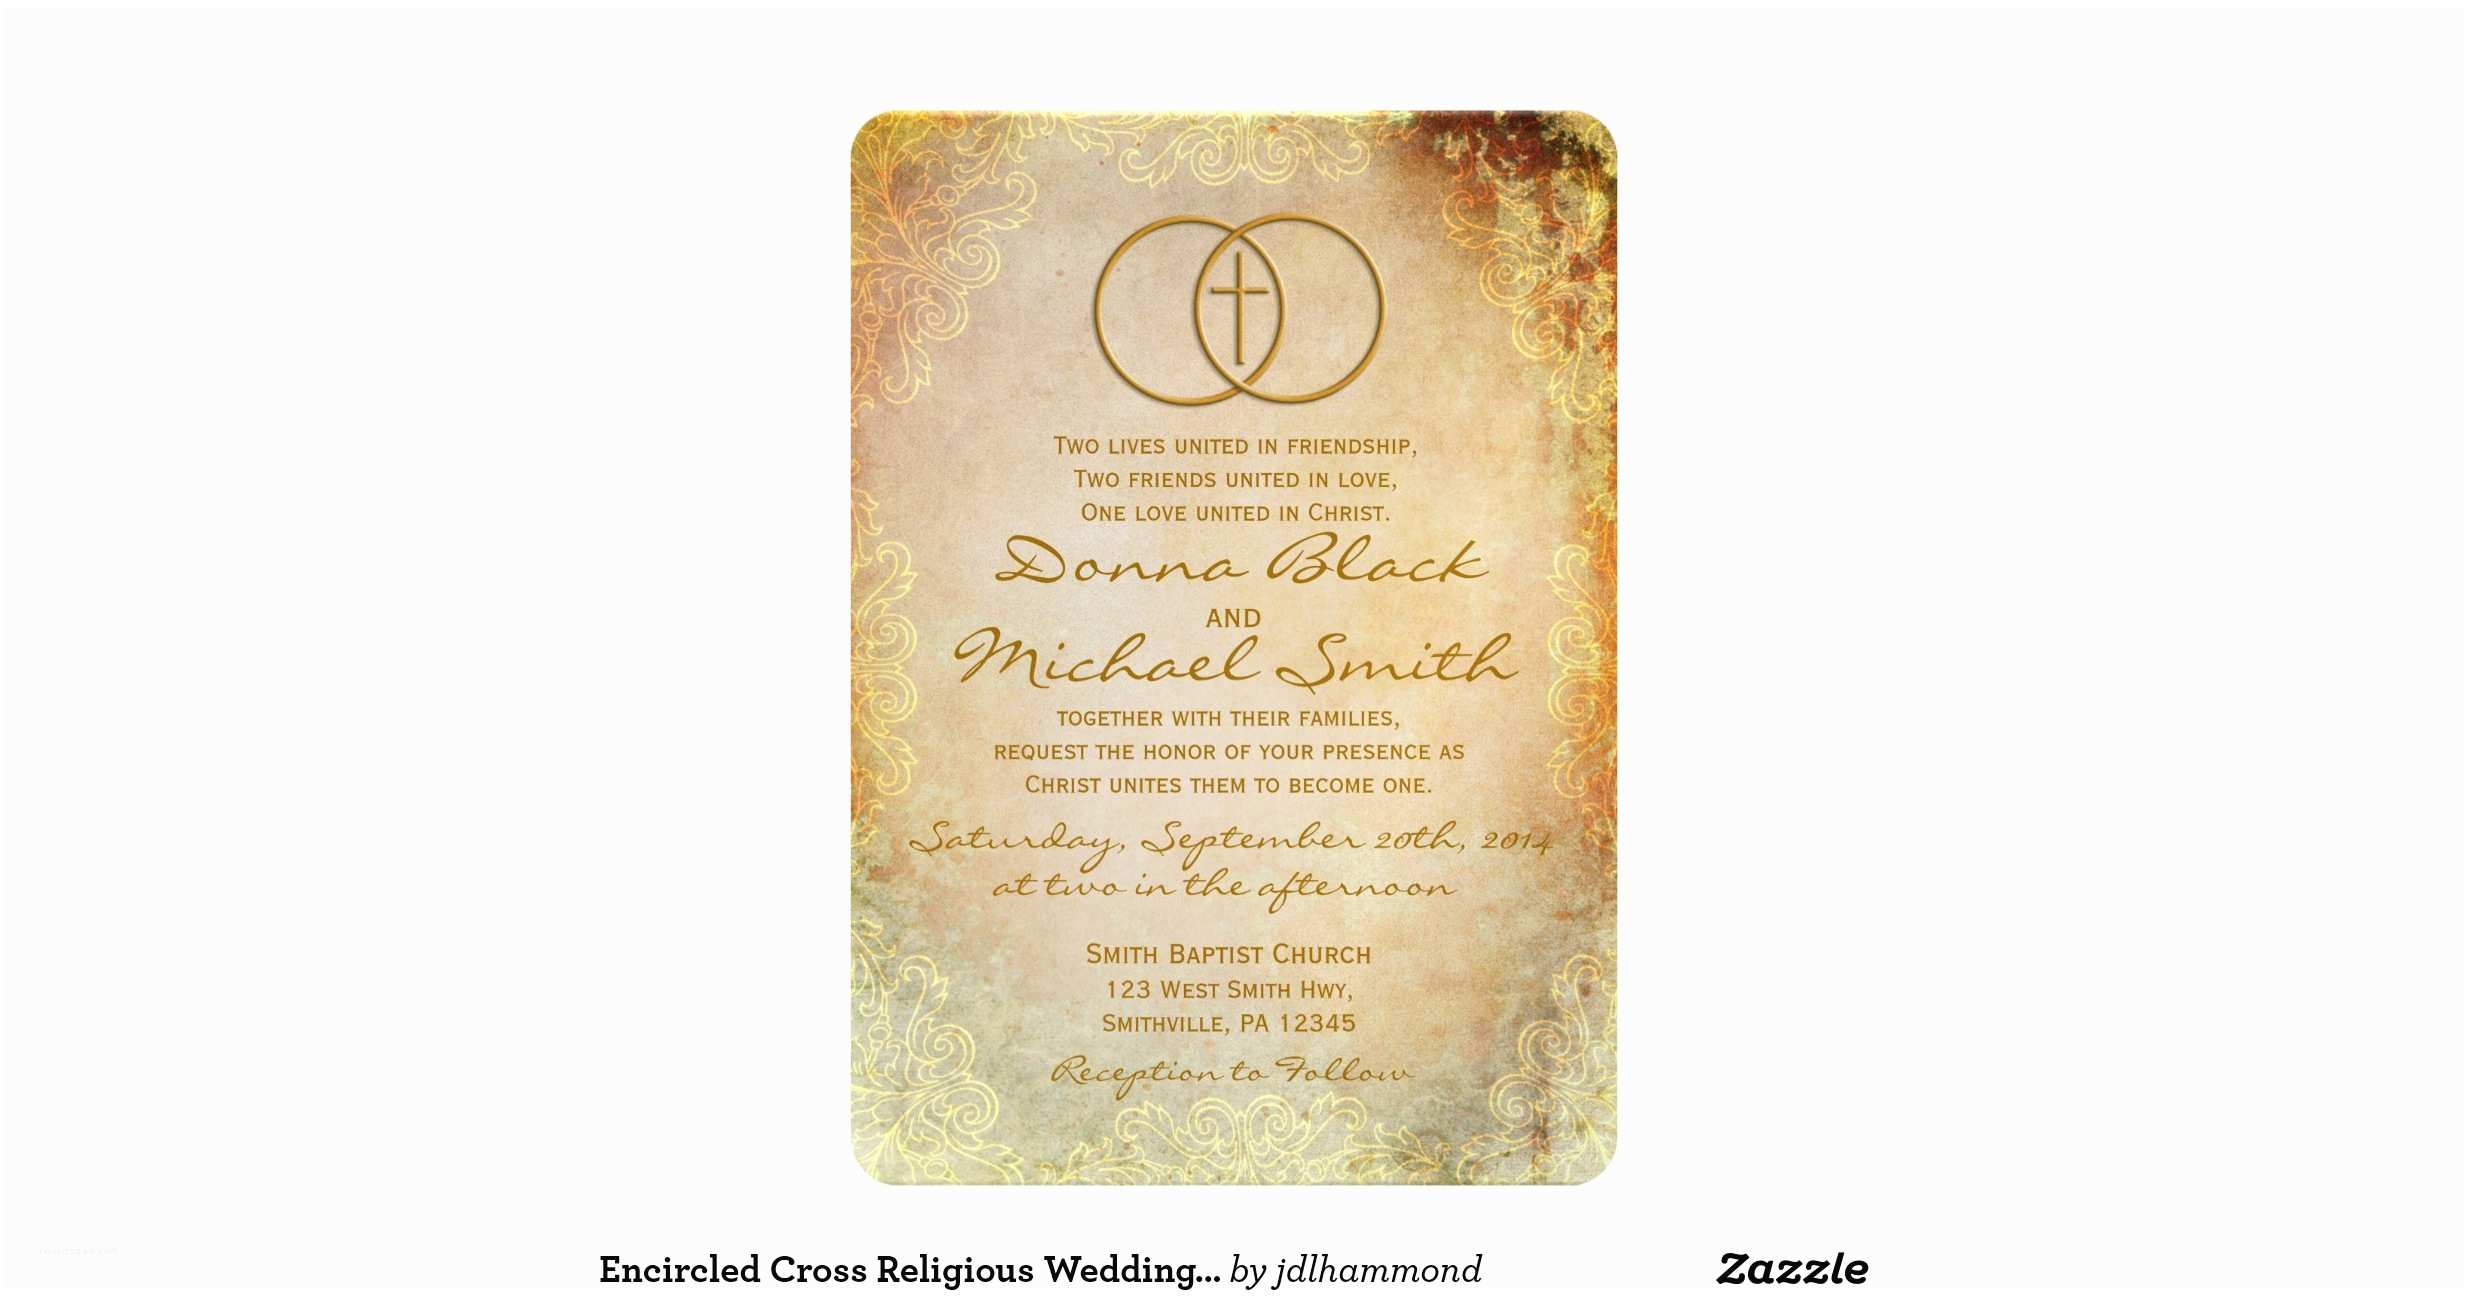 Religious Wedding Invitations Encircled Cross Religious Wedding Invitations